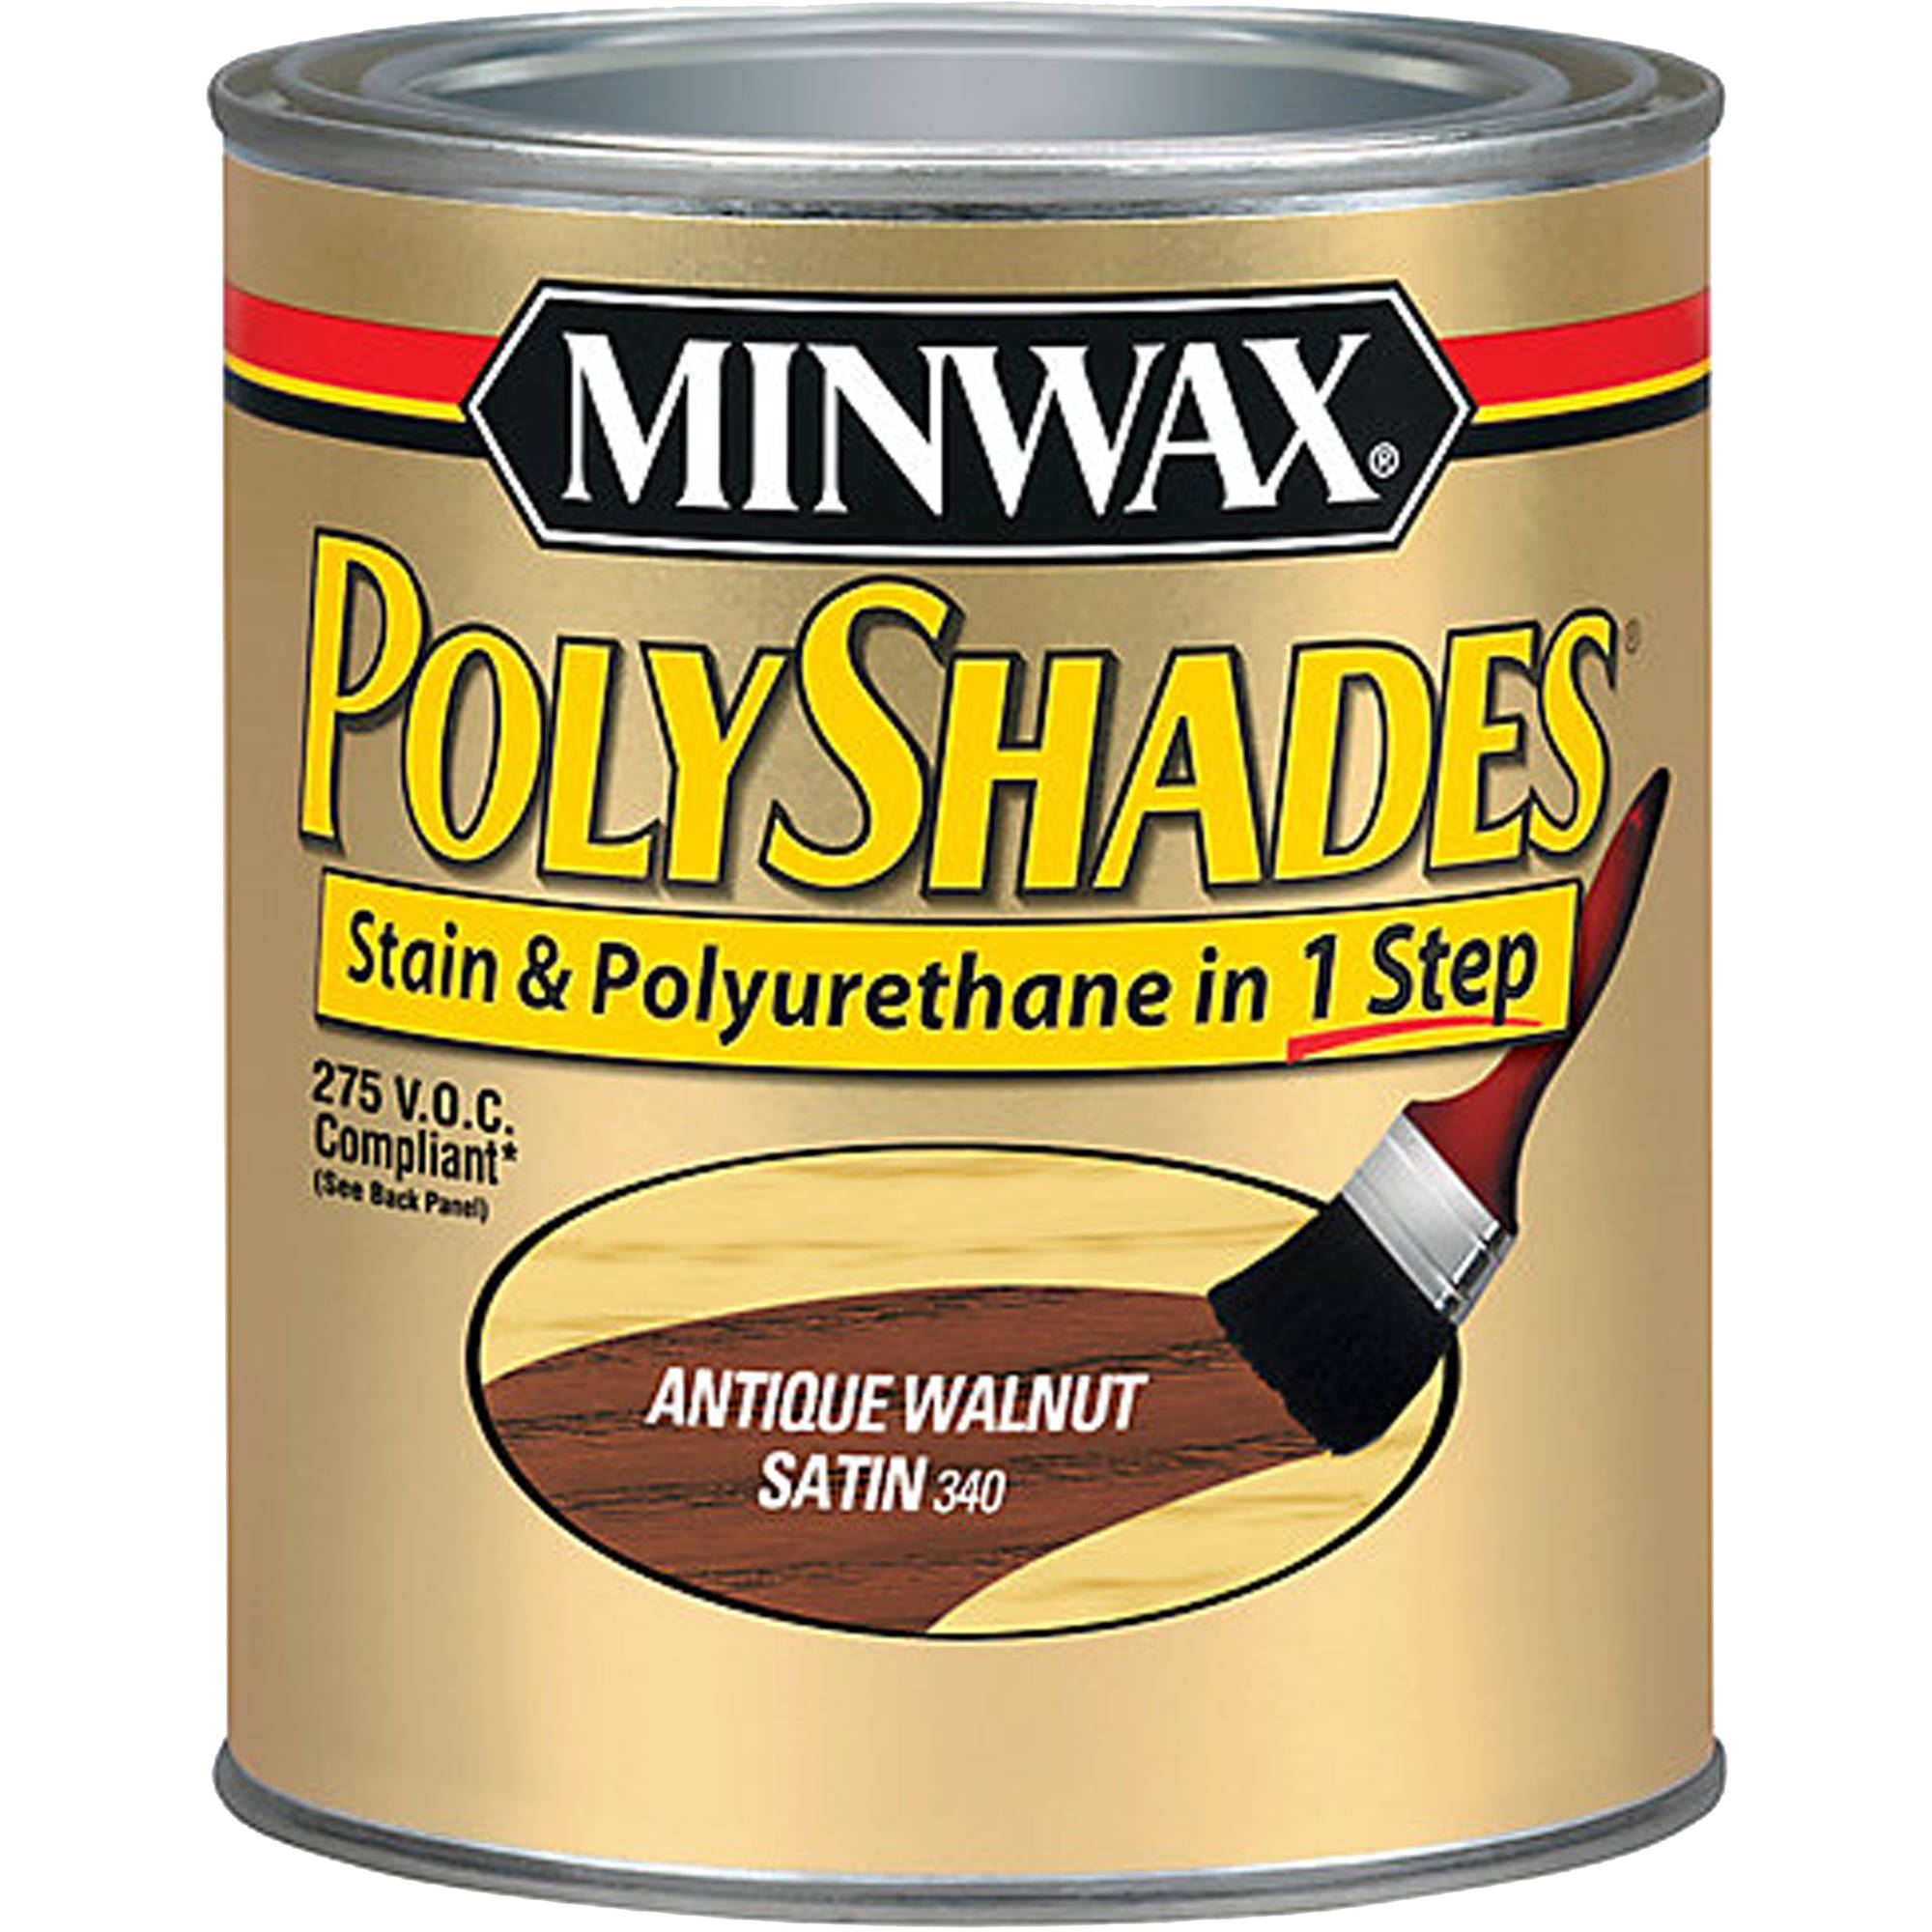 Minwax 275 Voc Polyshades Satin, 1/2 pt, Antique Walnut